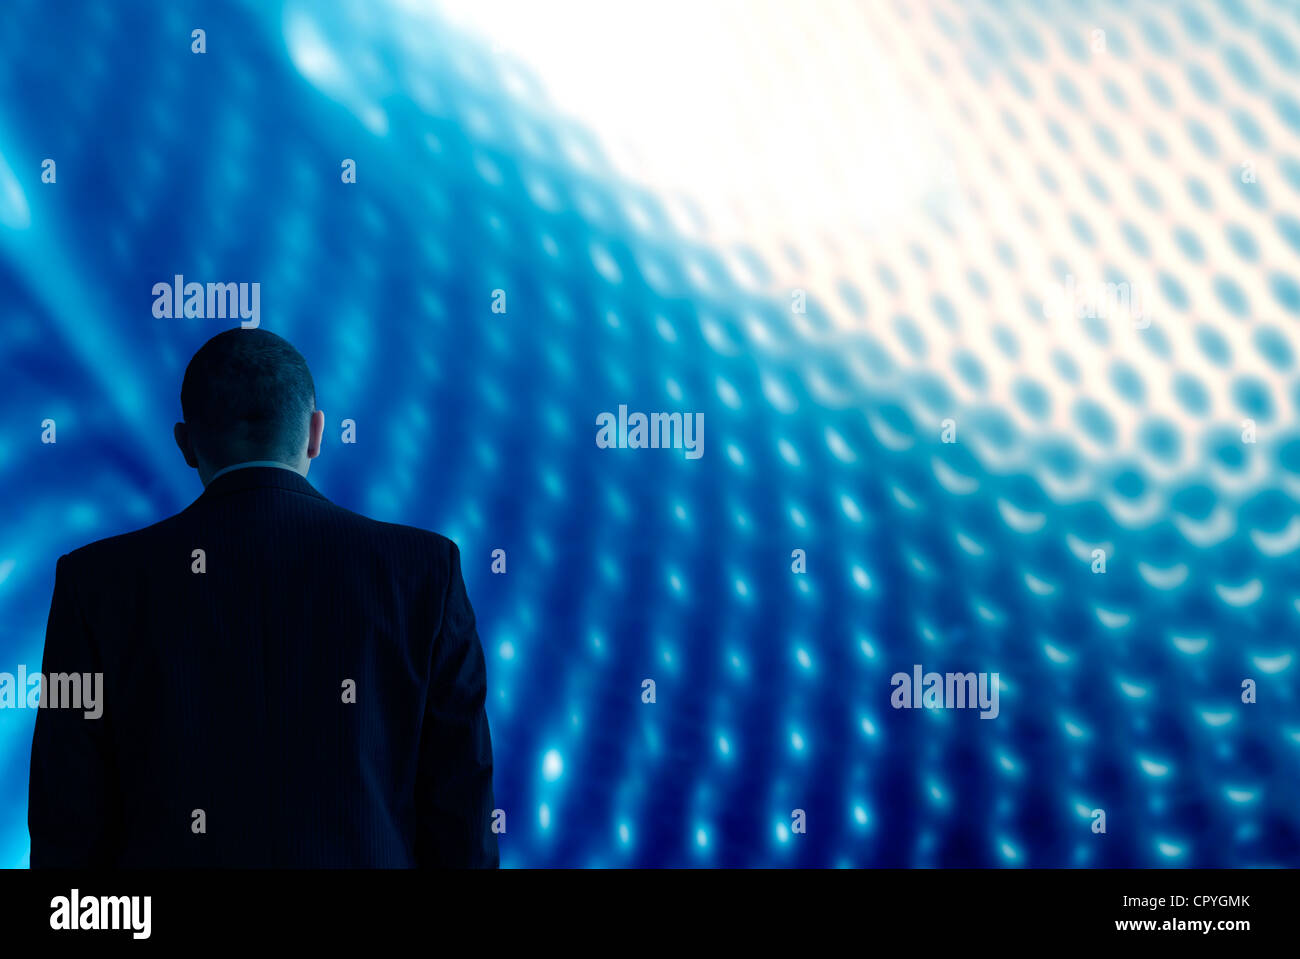 Look into future technology background blue with man - Stock Image